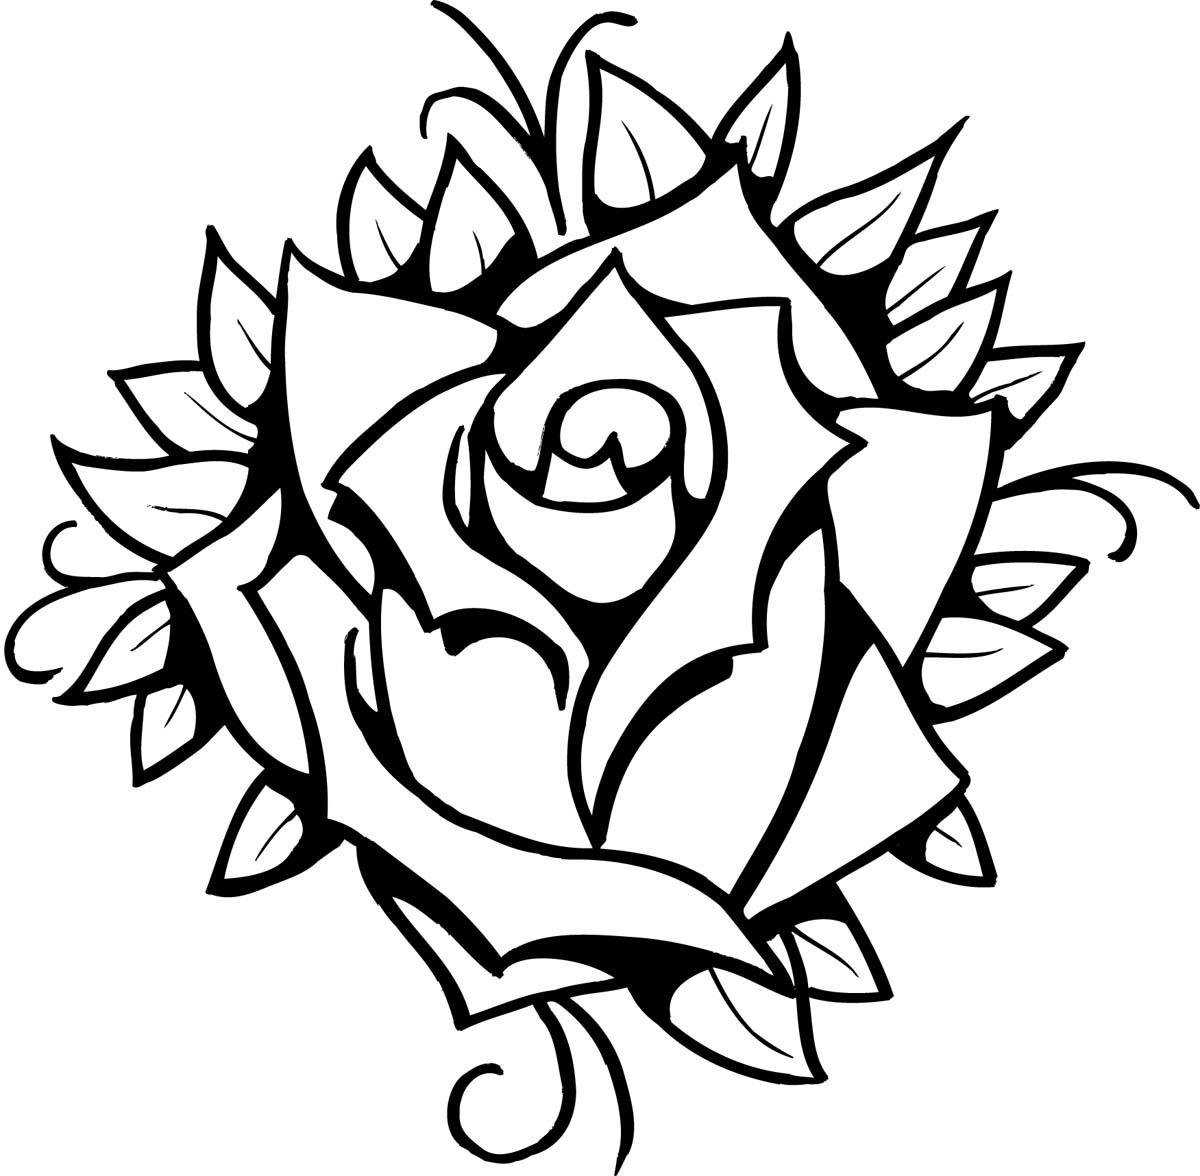 rose art coloring pages - photo#30